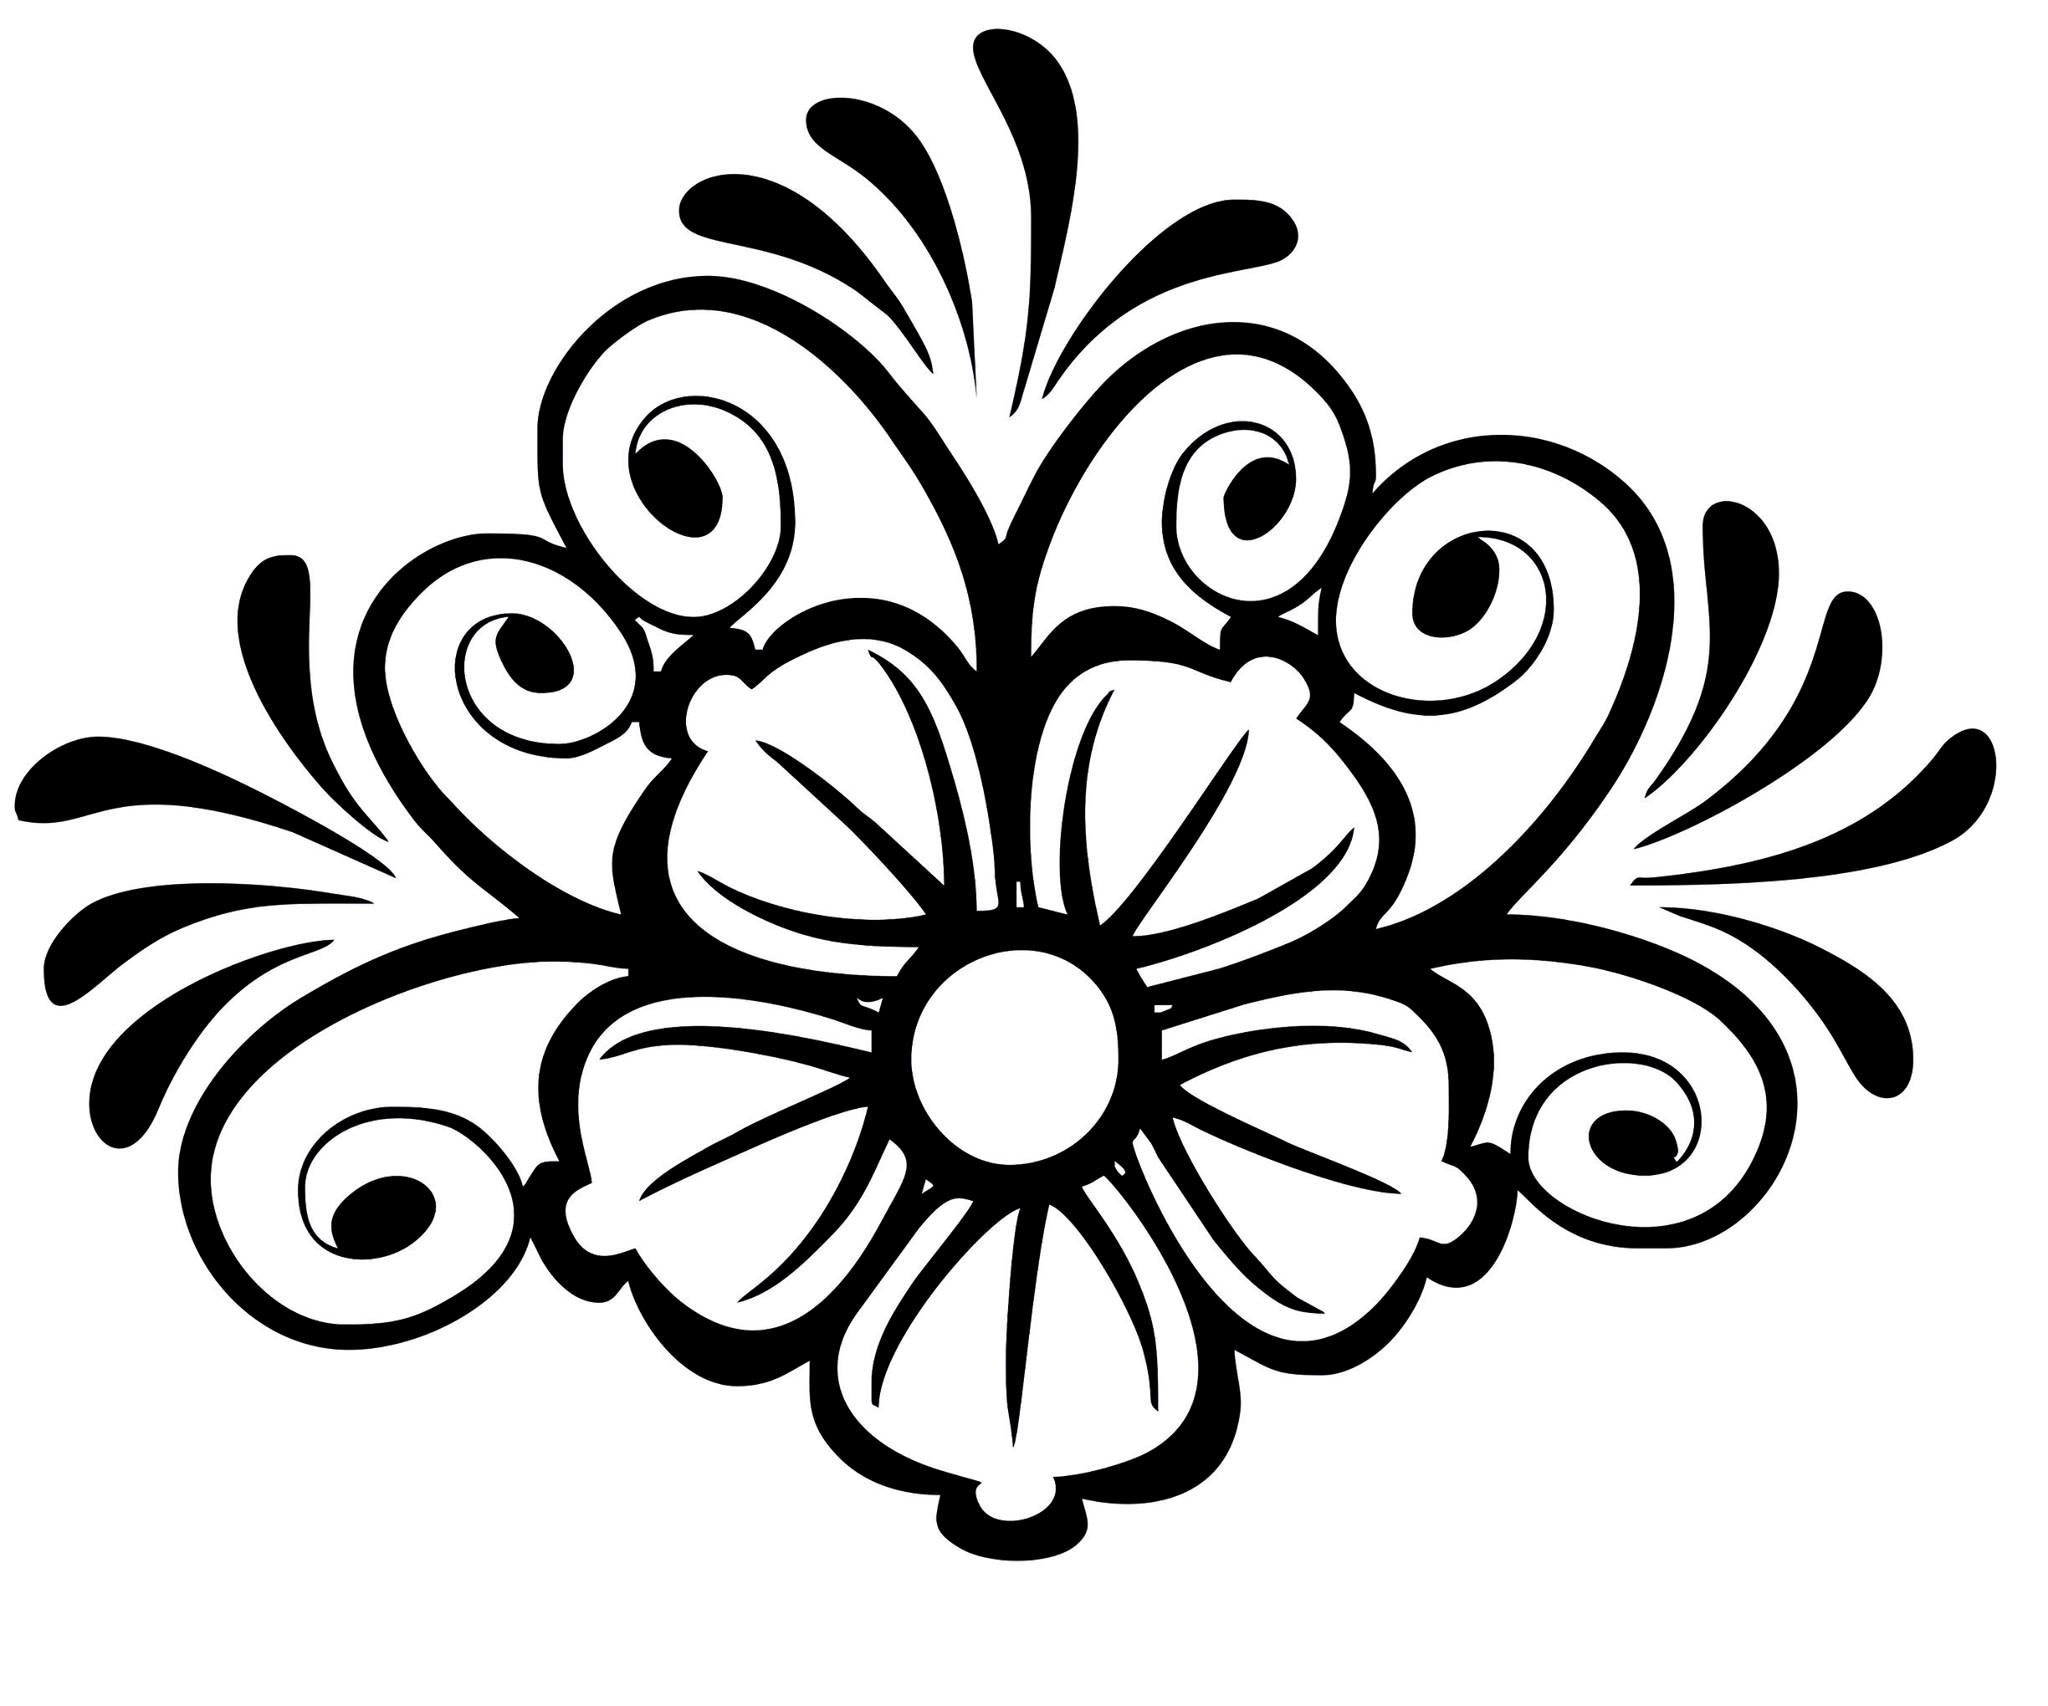 Black And White Lace Flowers And Leaves Vector Art jpg Image